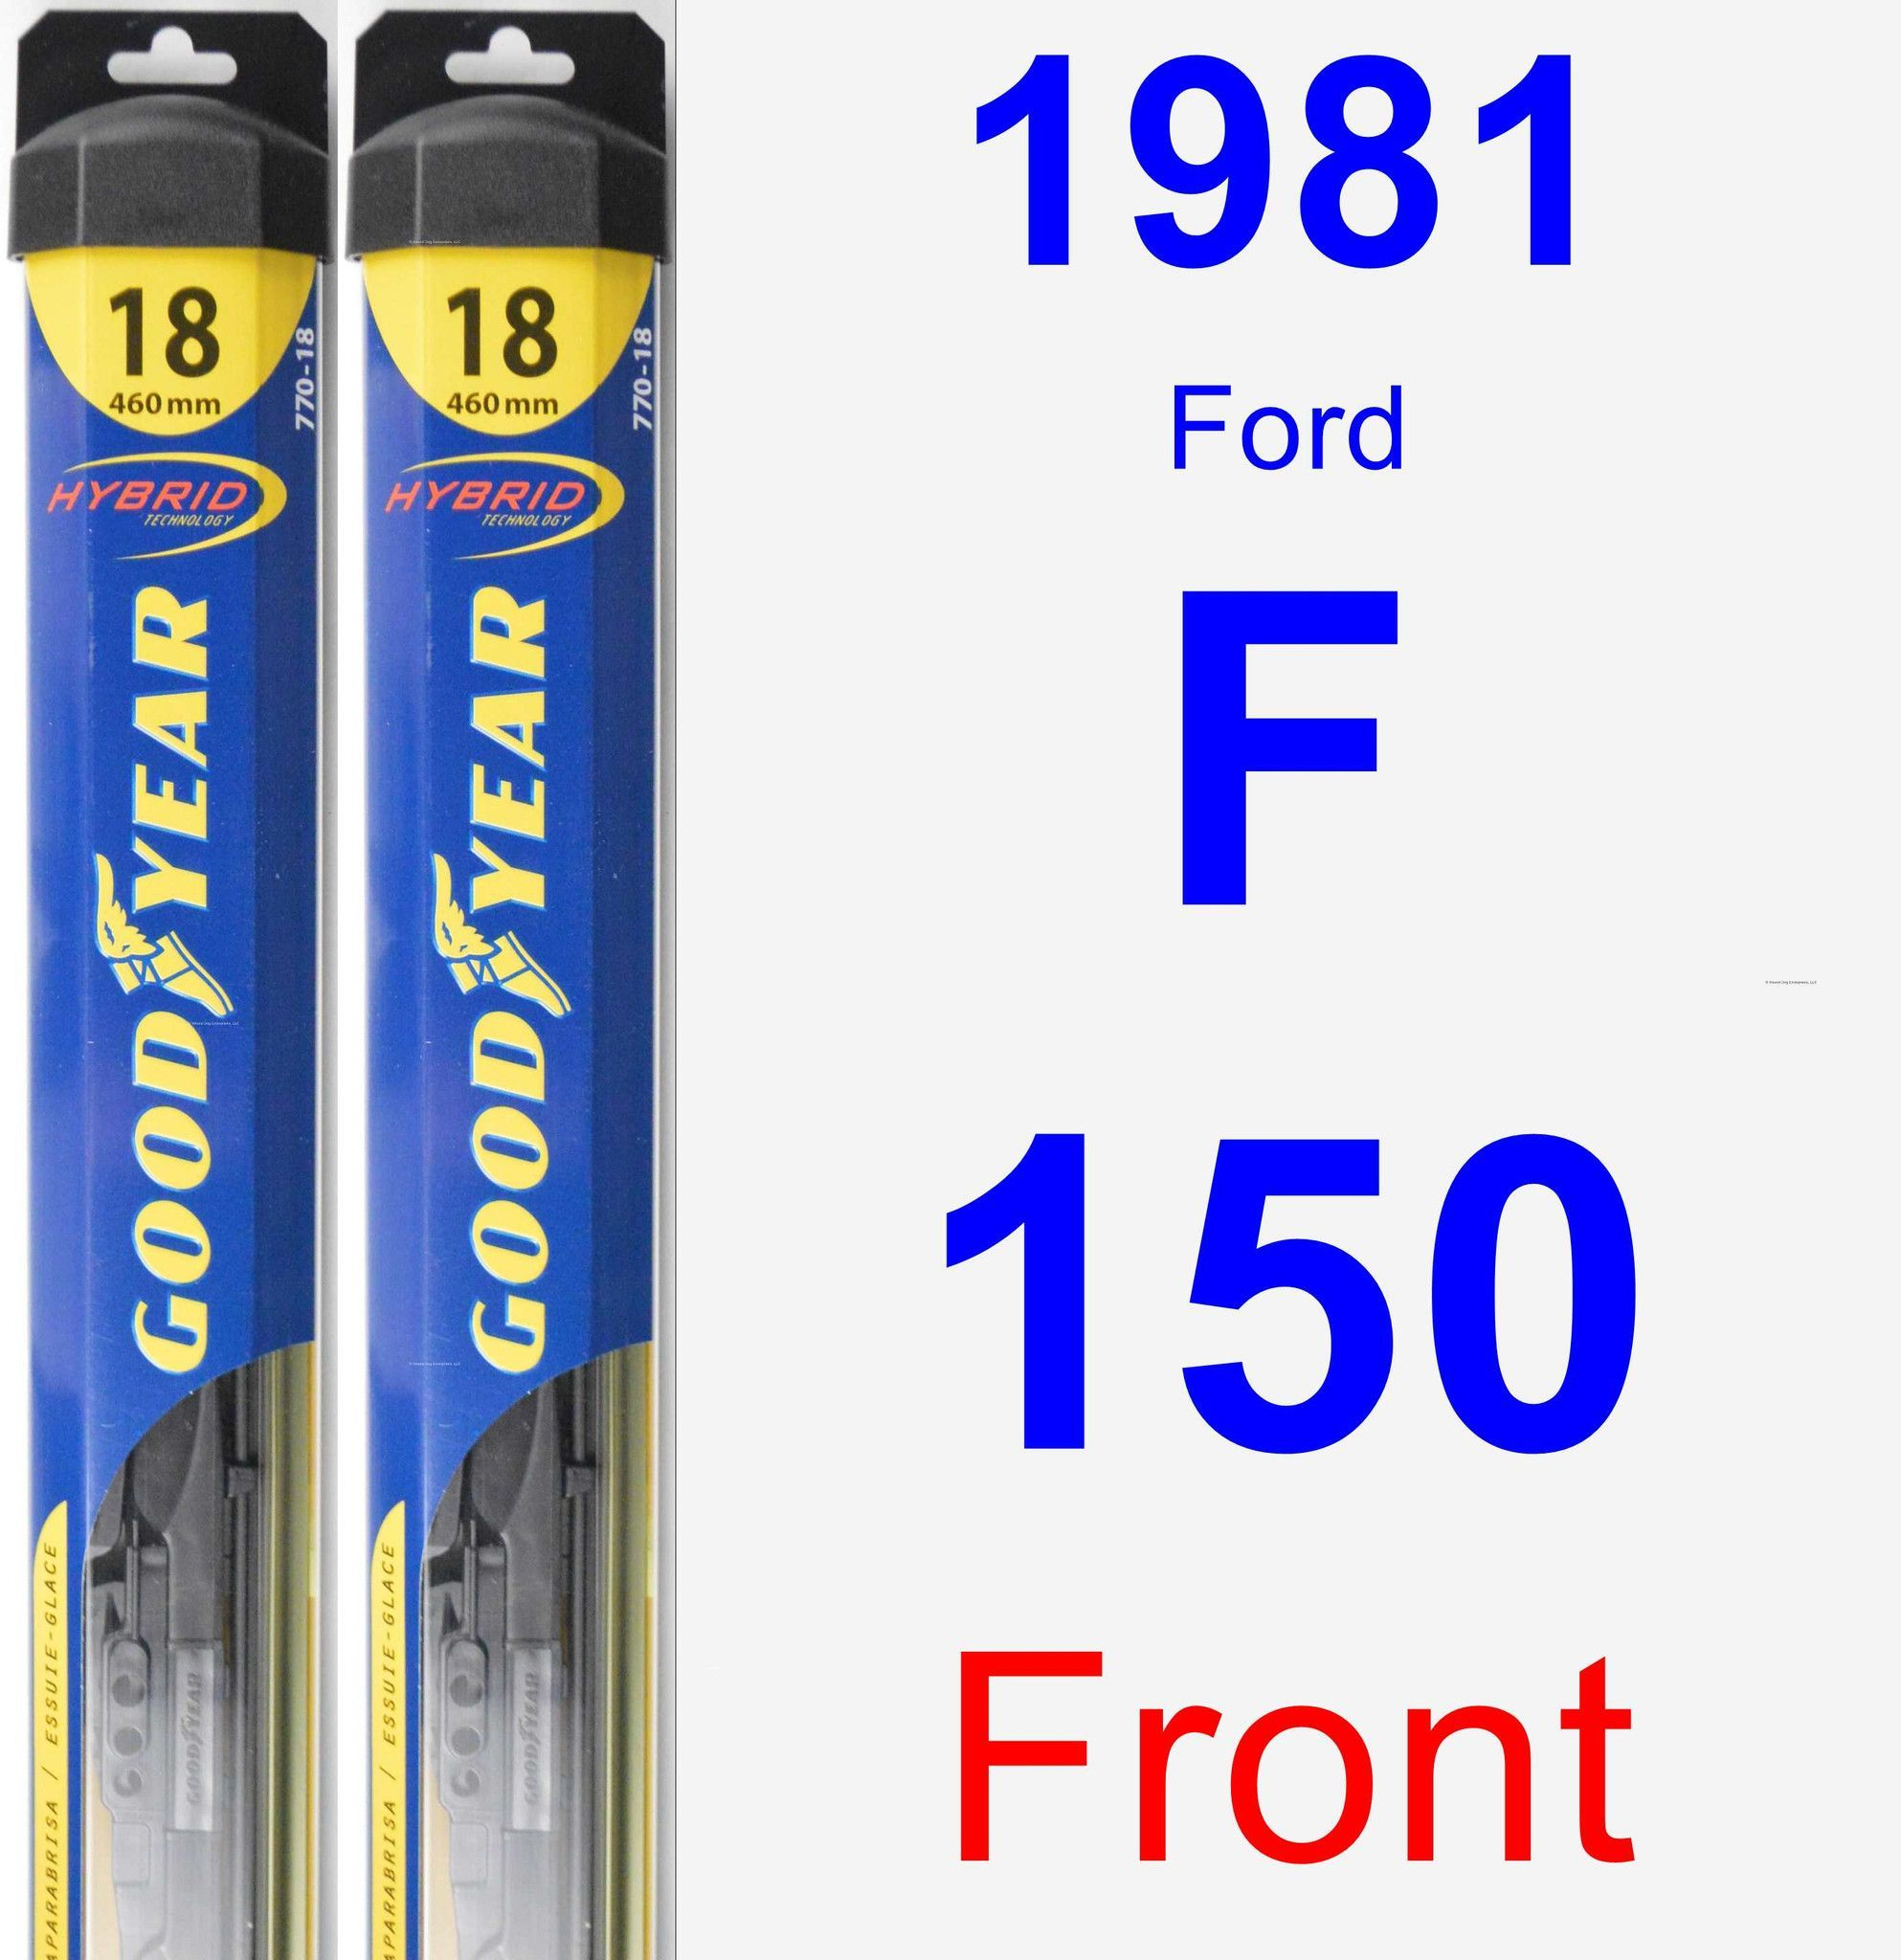 Front Wiper Blade Pack for 1981 Ford F-150 - Hybrid